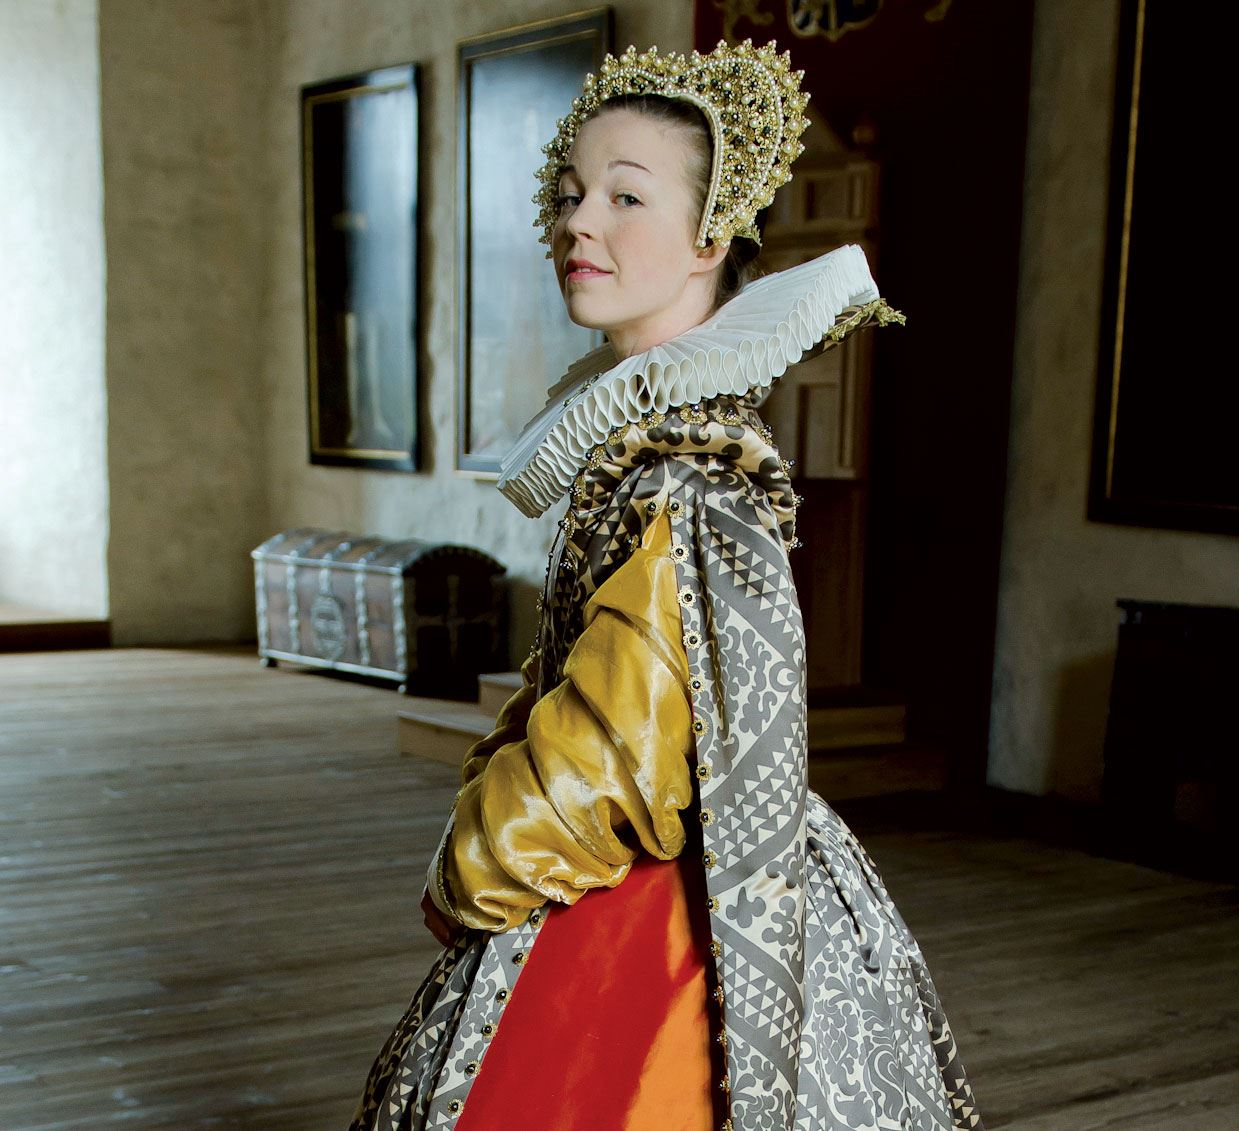 Exhibitions at the Kalmar Castle